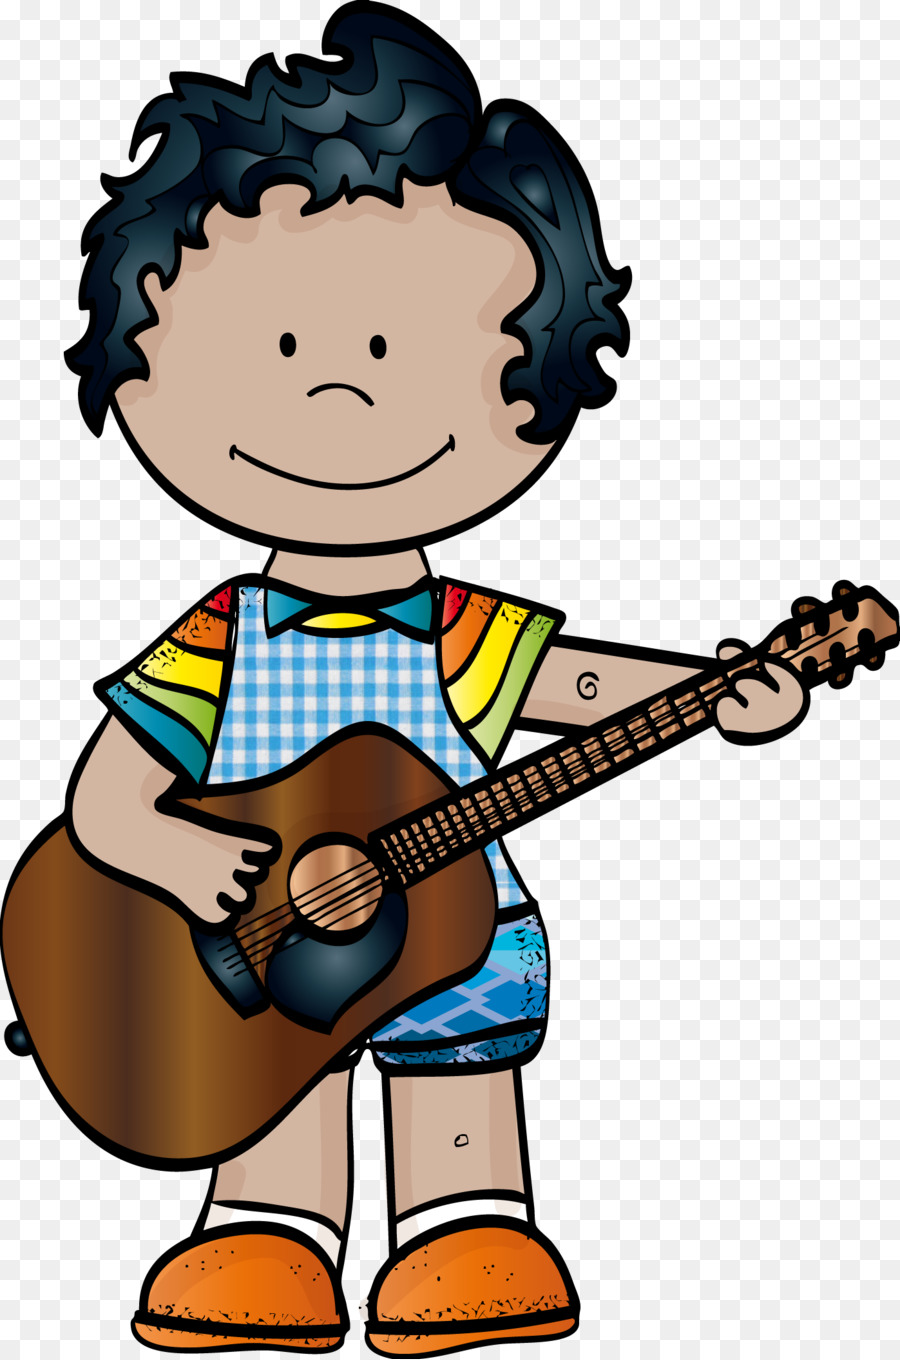 musical instruments drawing clip art school kids png download rh kisspng com musical instruments clipart free download